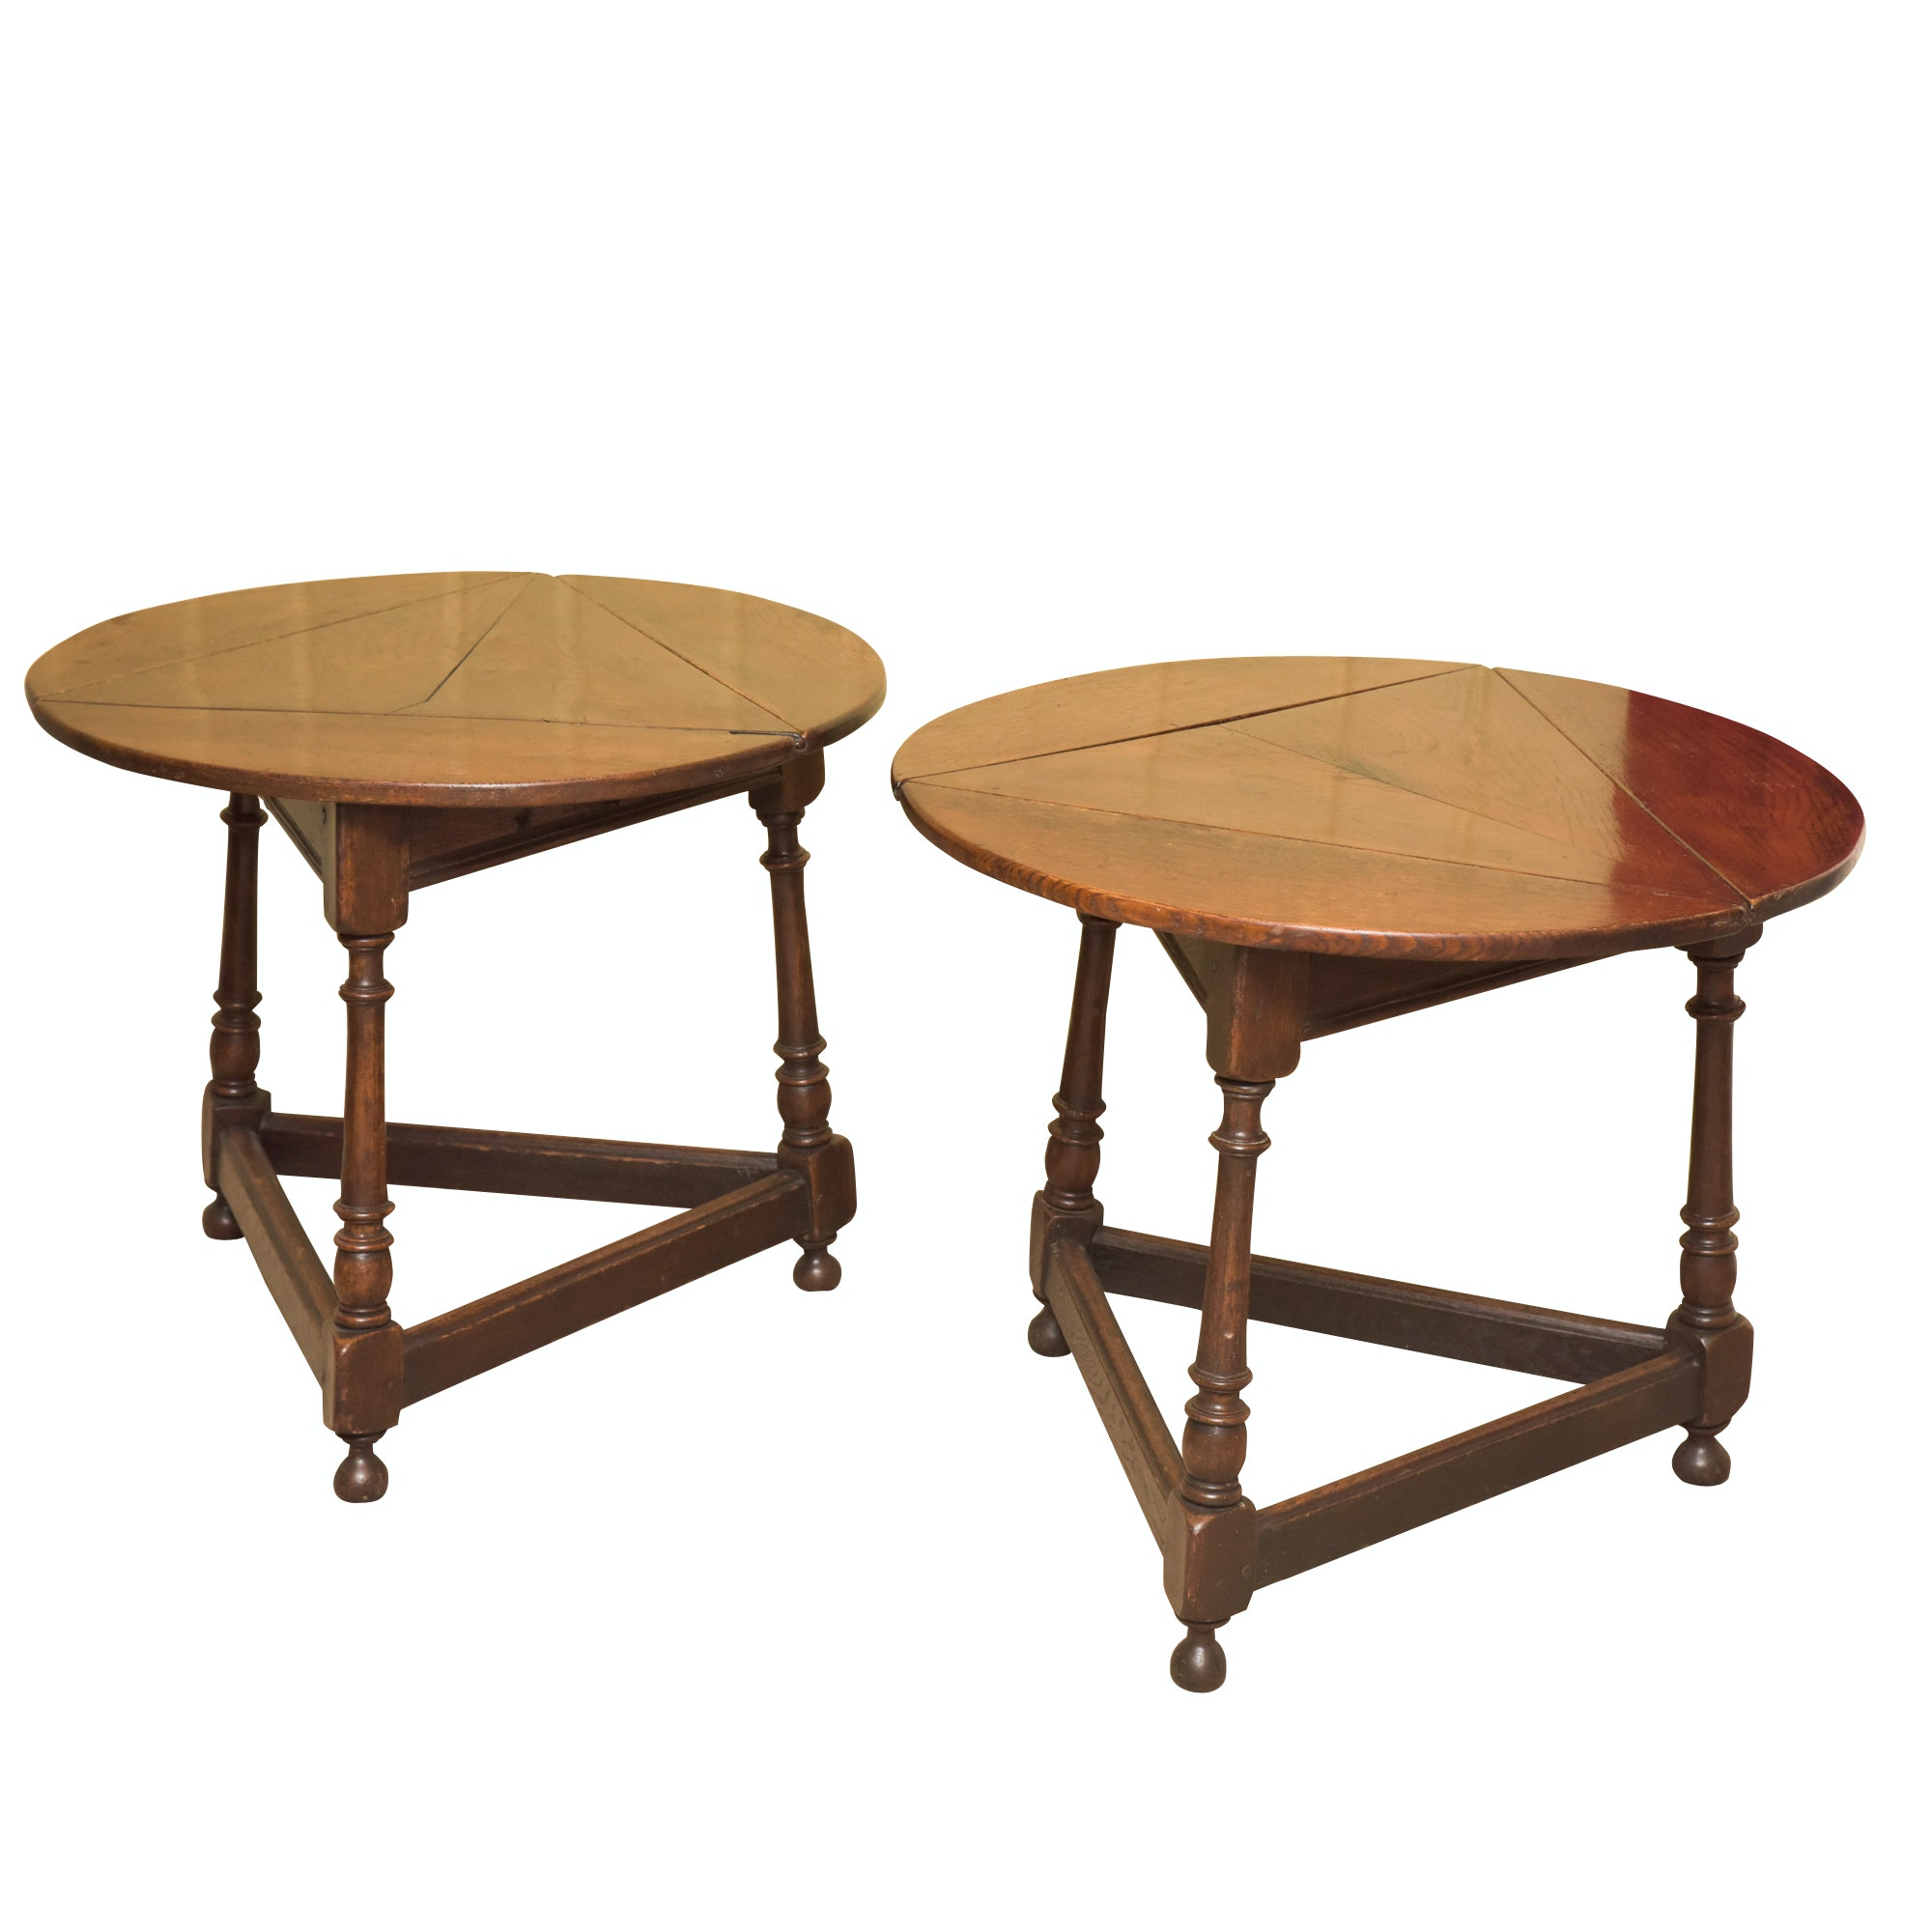 William and Mary Style Oak Handkerchief Side Tables, Late 19th Century